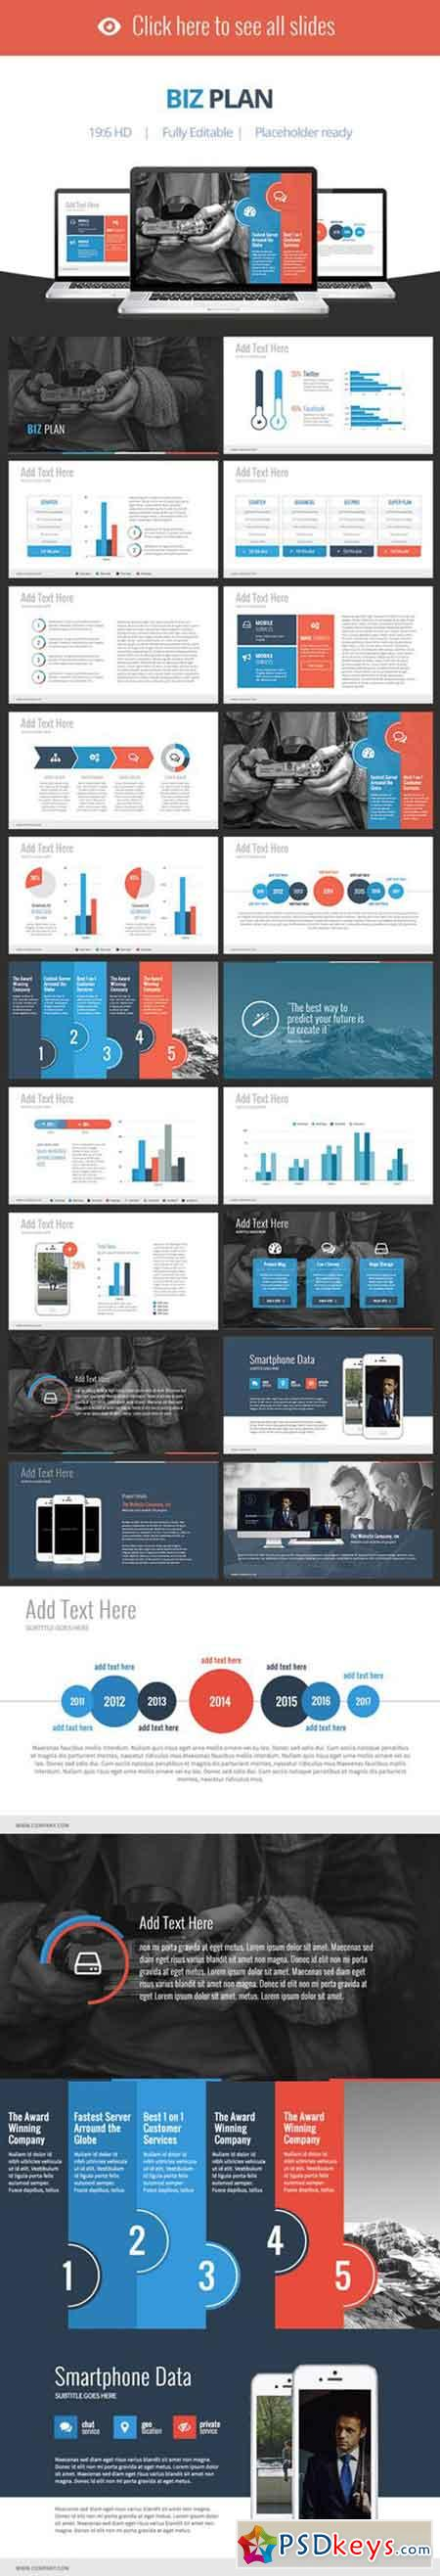 Biz Plan - Keynote Template 84329